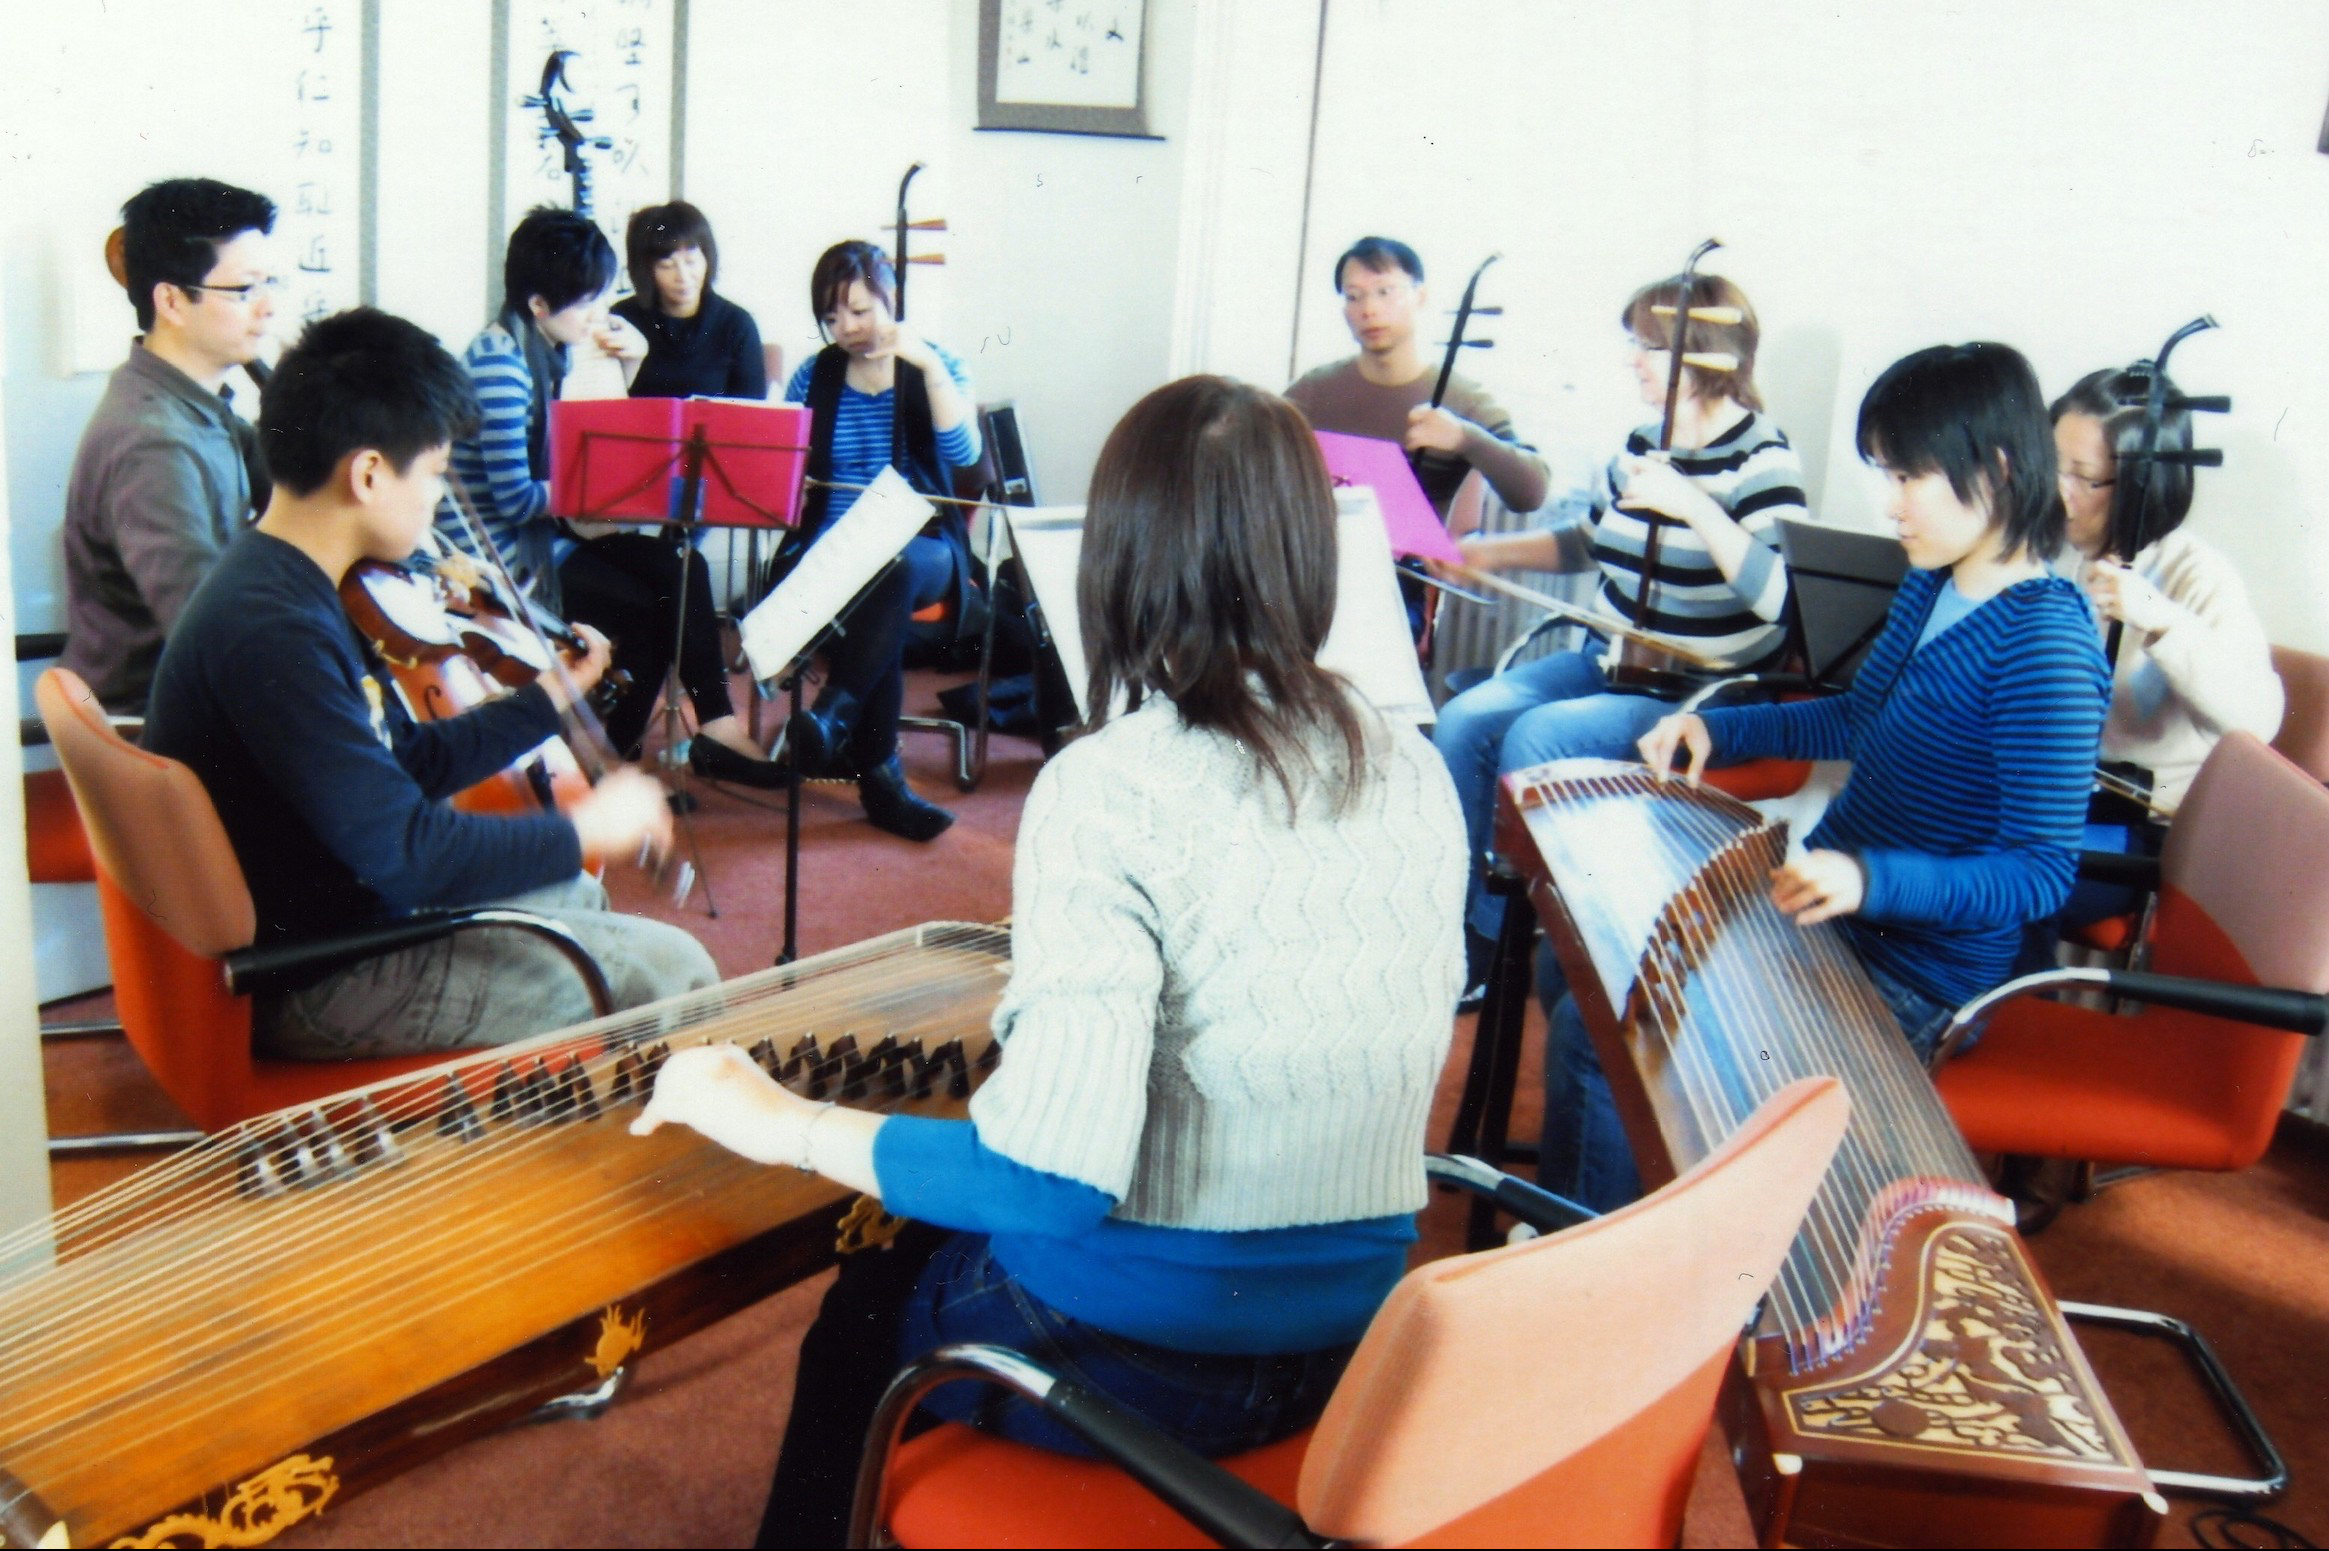 Chinese Orchestra photo small size